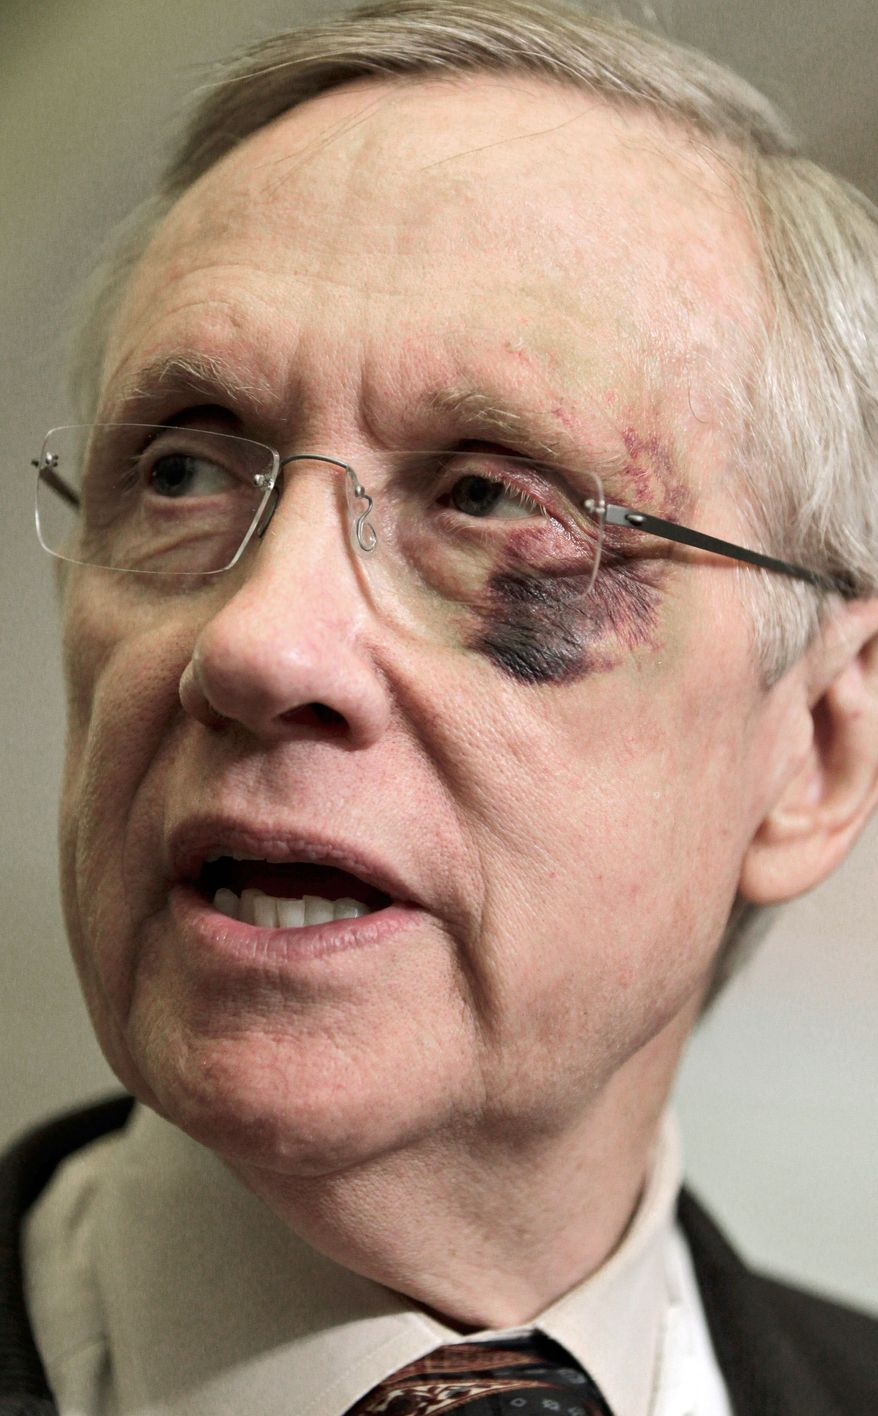 """ASSOCIATED PRESS """"This kind of interference is inappropriate,"""" said Senate Majority Leader Harry Reid about GOP pressure on the NLRB regarding Boeing's plan for a South Carolina plant."""